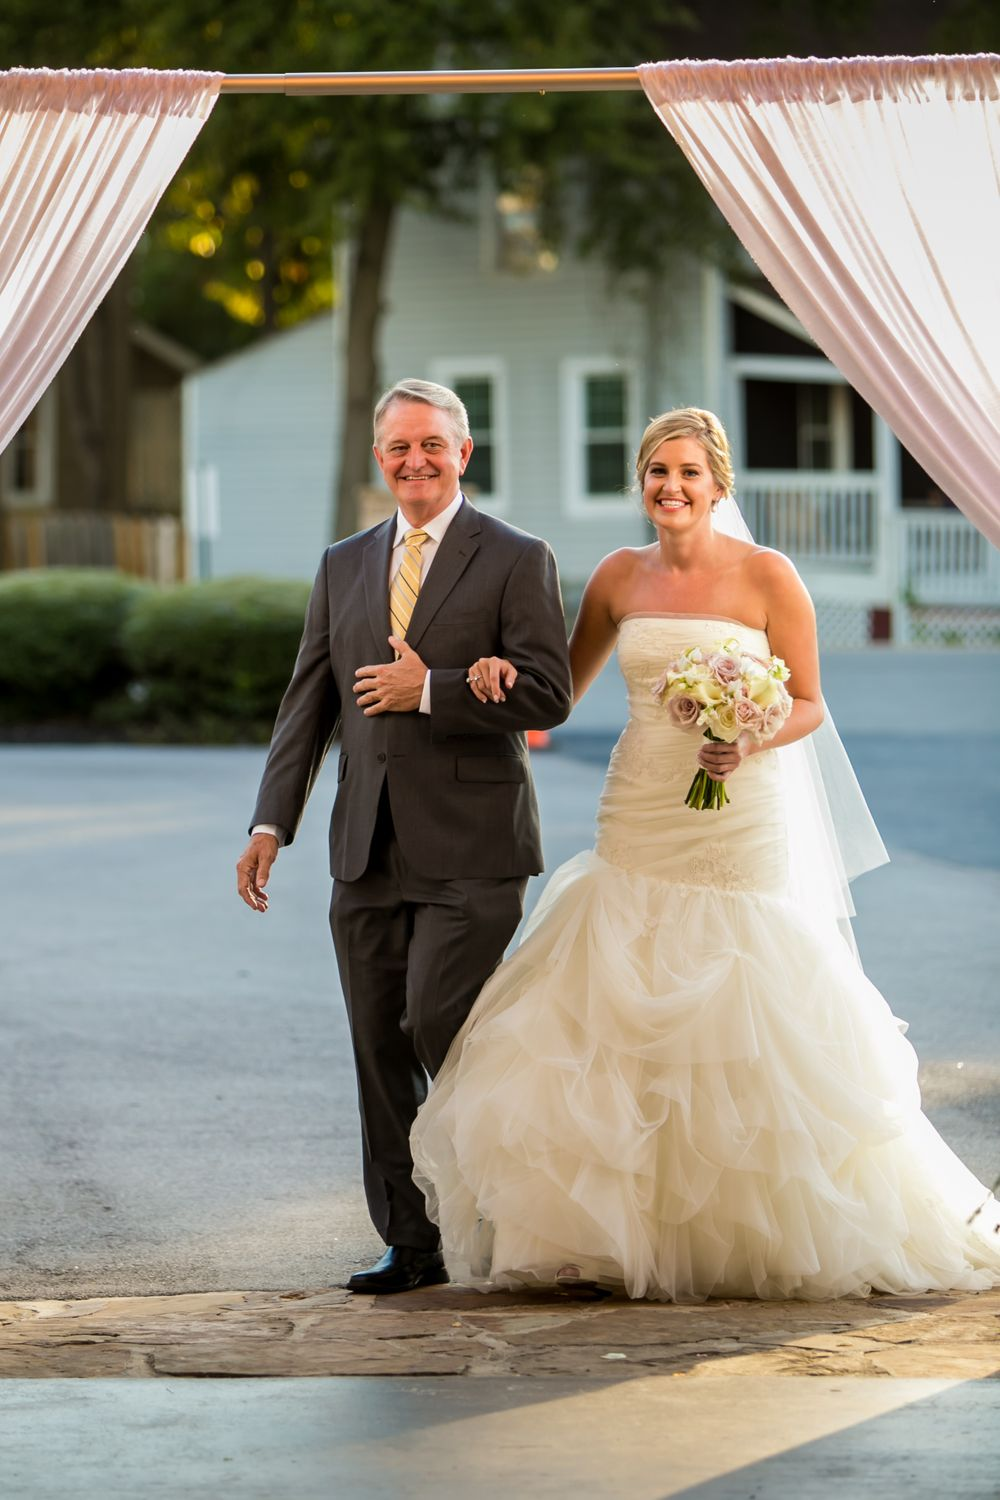 Bride Ashley is walked down the aisle by her father during her wedding at Stone River in West Columbia, SC